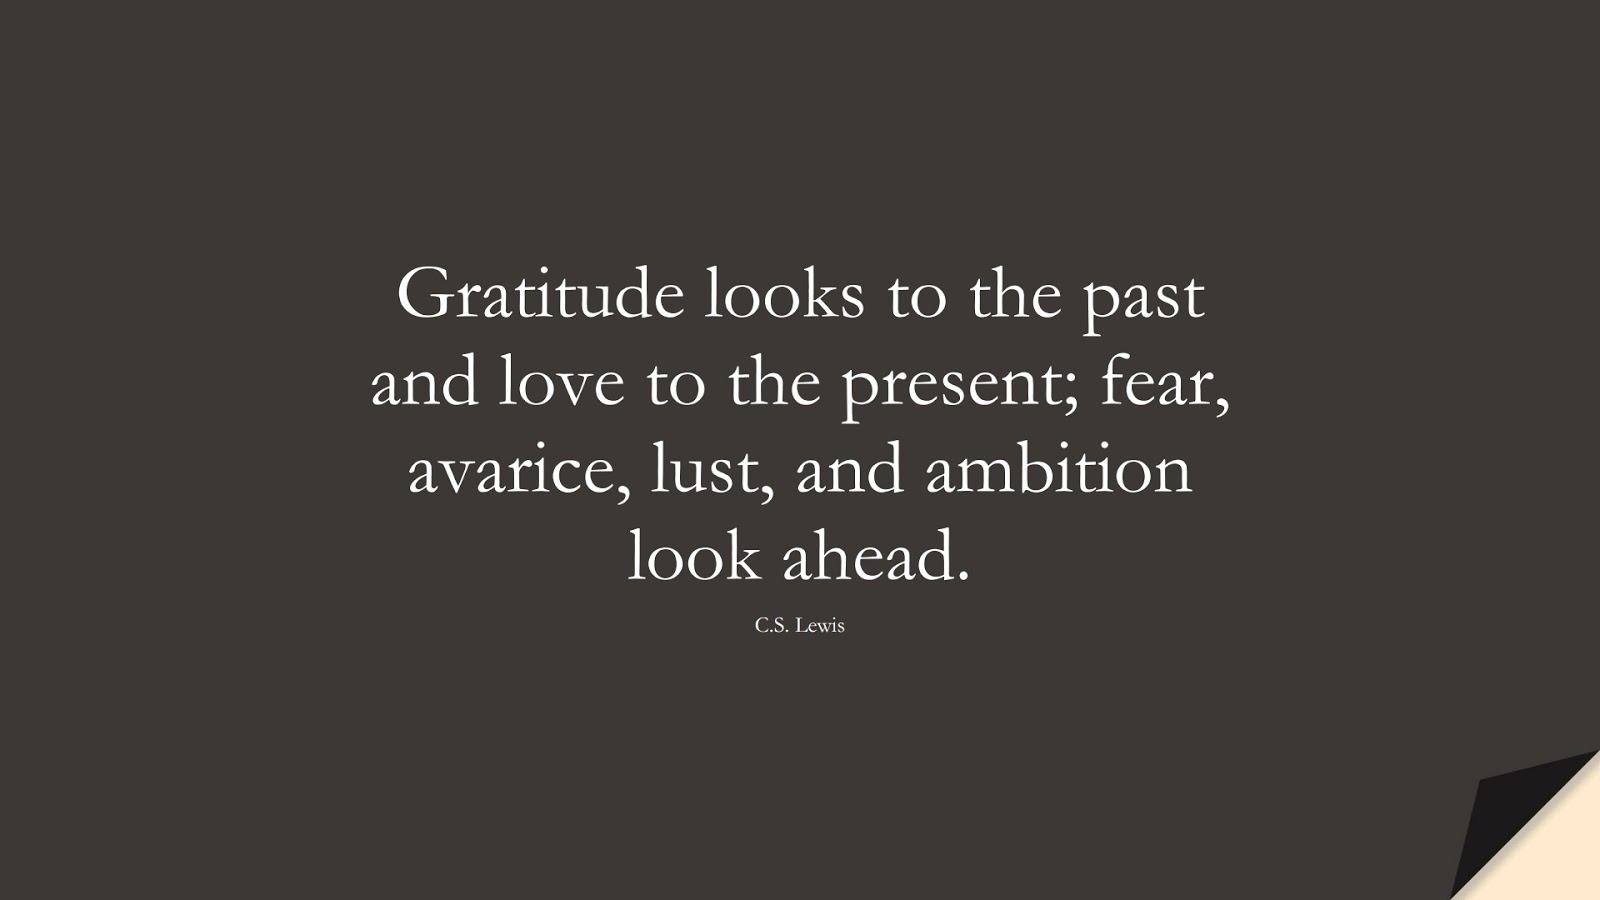 Gratitude looks to the past and love to the present; fear, avarice, lust, and ambition look ahead. (C.S. Lewis);  #FearQuotes